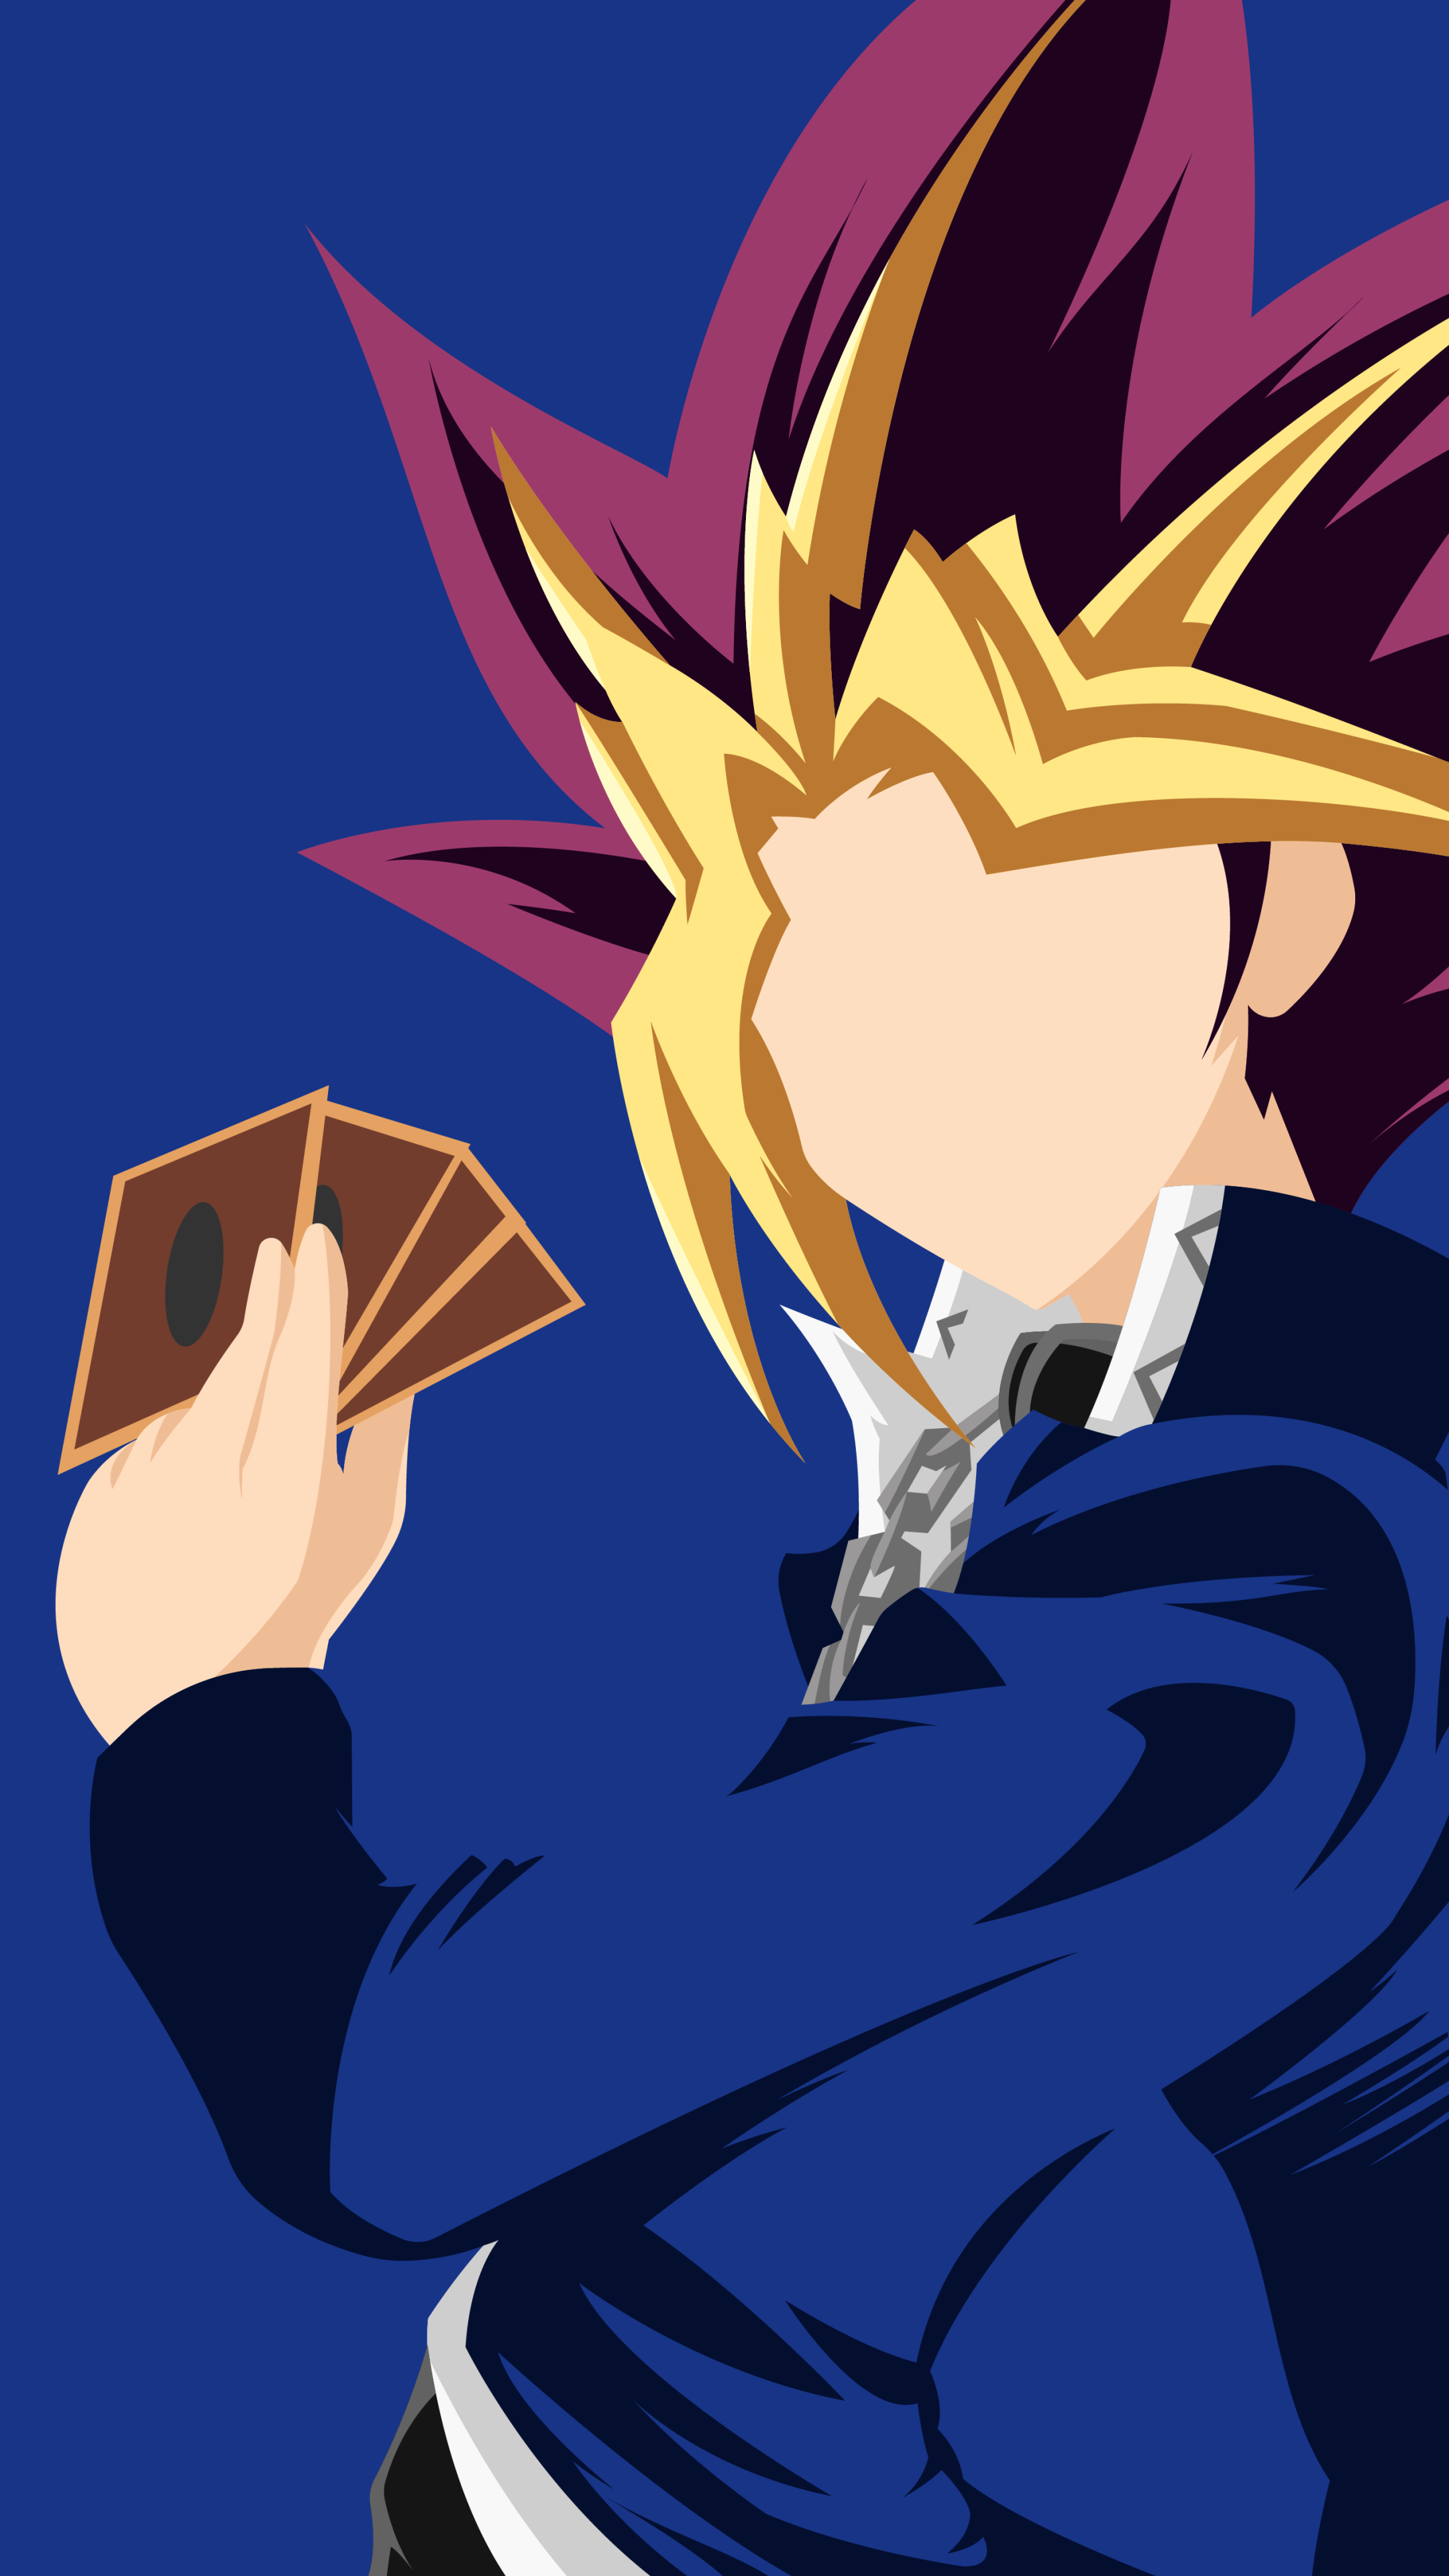 Anime Yu Gi Oh 1440x2560 Wallpaper Id 761647 Mobile Abyss